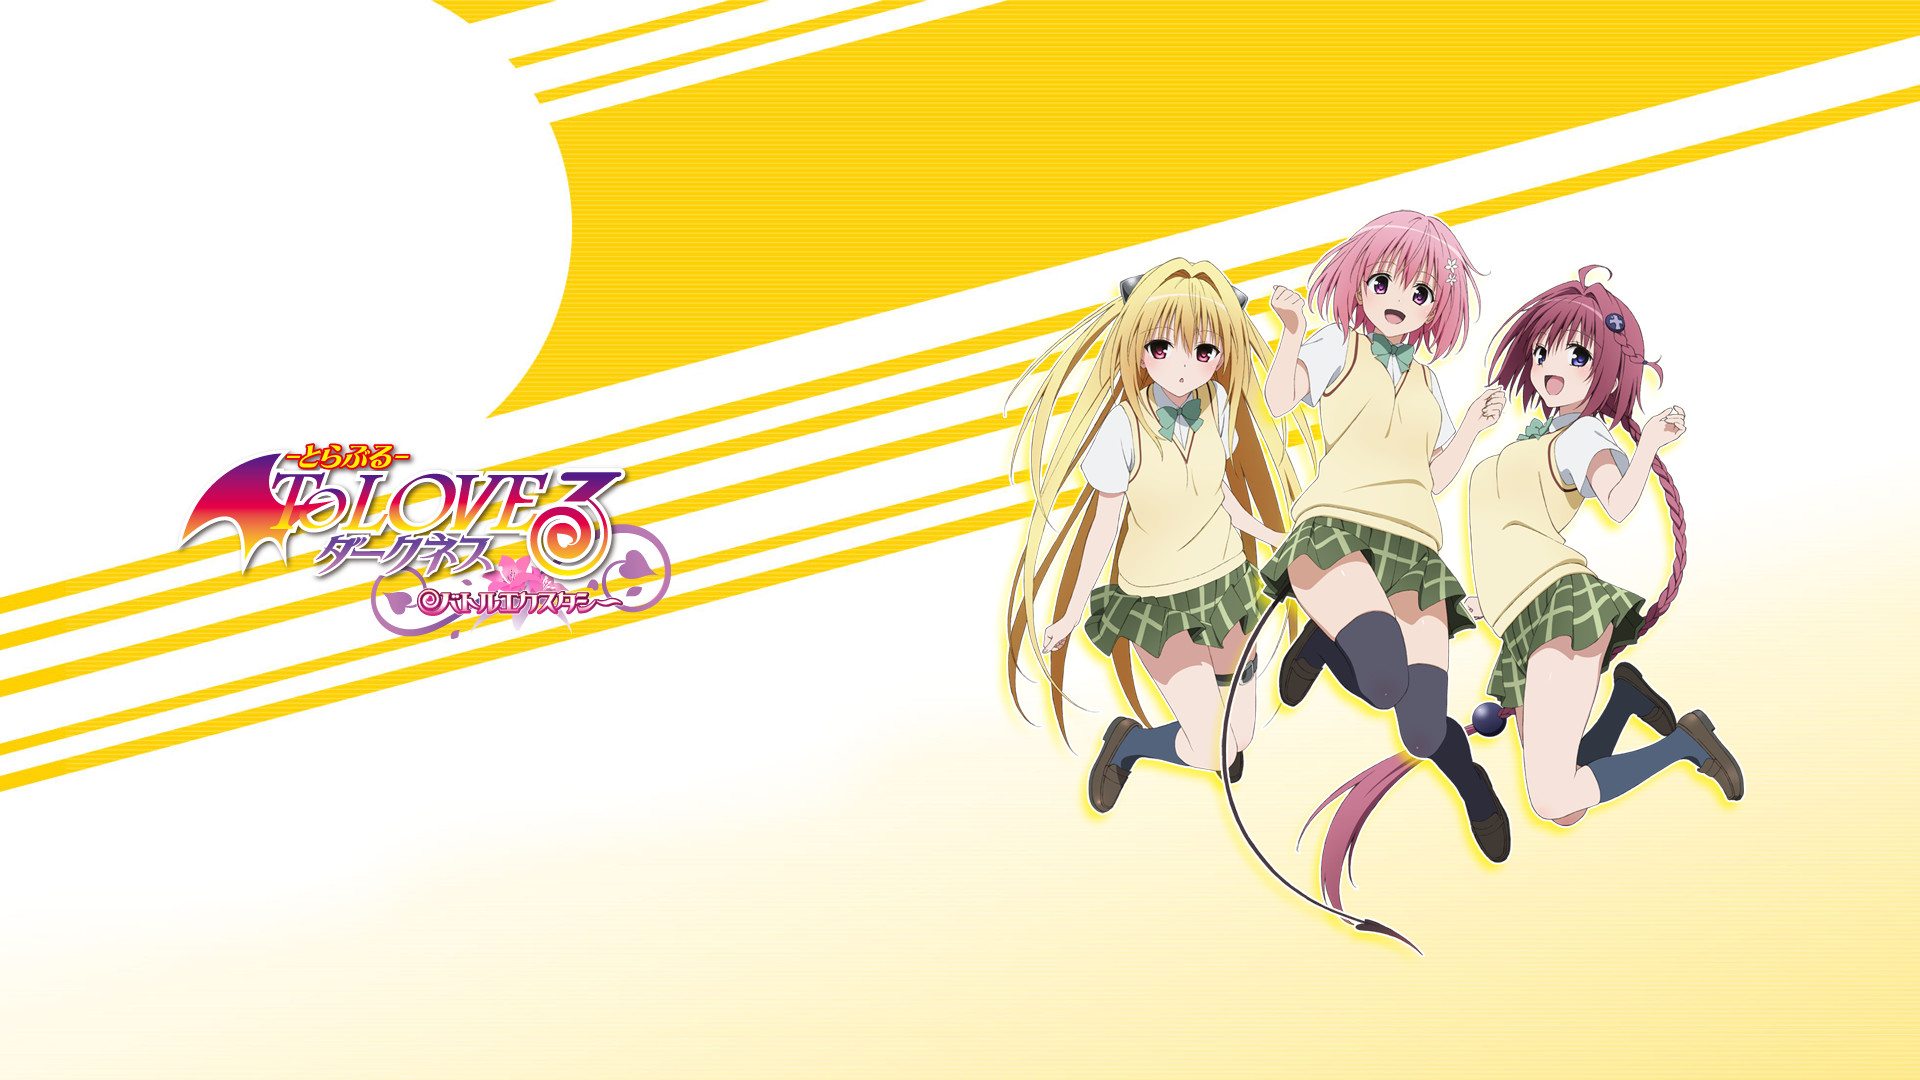 1920x1080 Anime - To Love-Ru: Darkness Golden Darkness Mea Kurosaki Momo Velia  Deviluke To